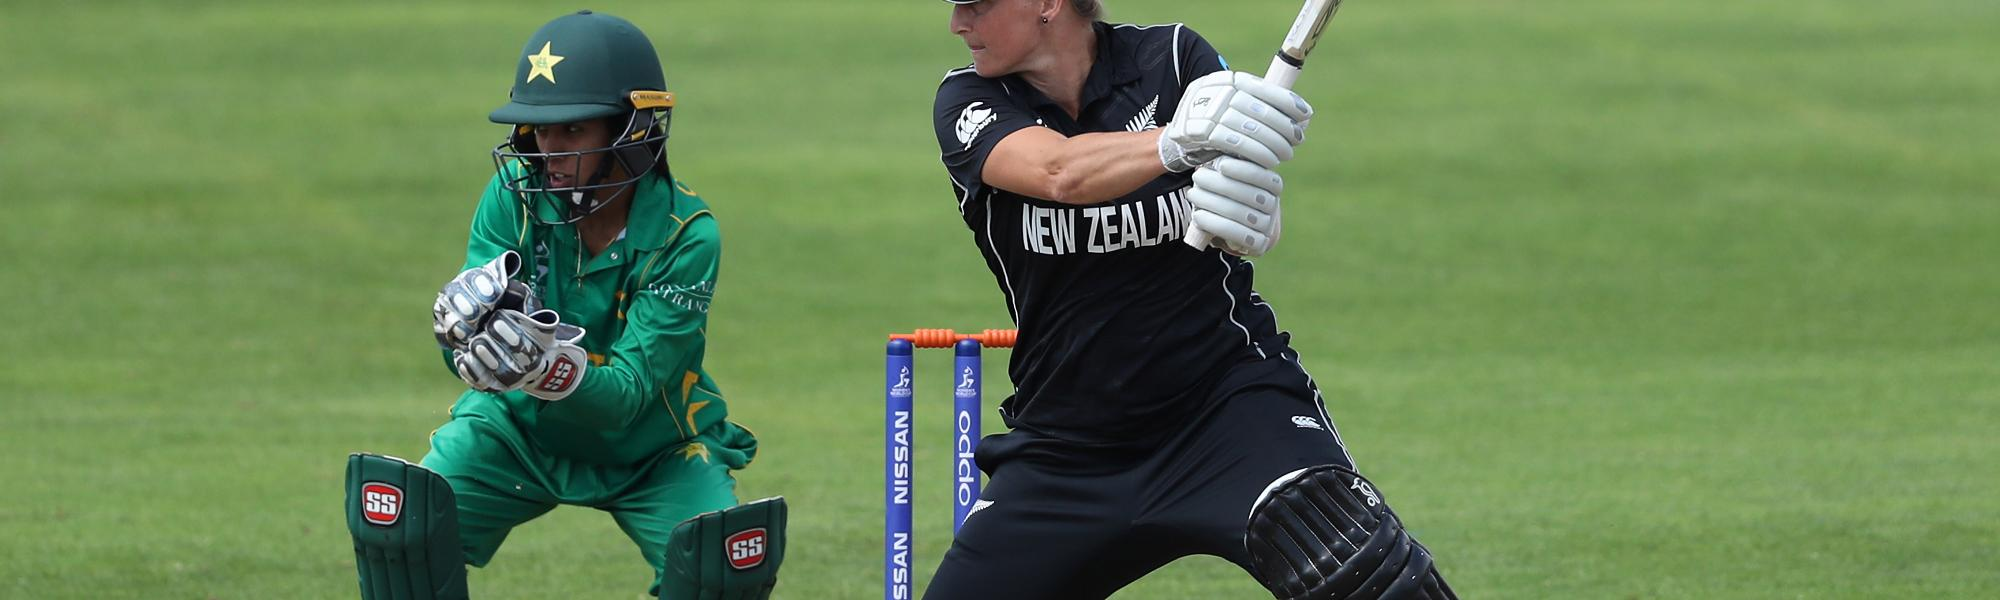 Sophie Devine of New Zealand hits out during the match against Pakistan.